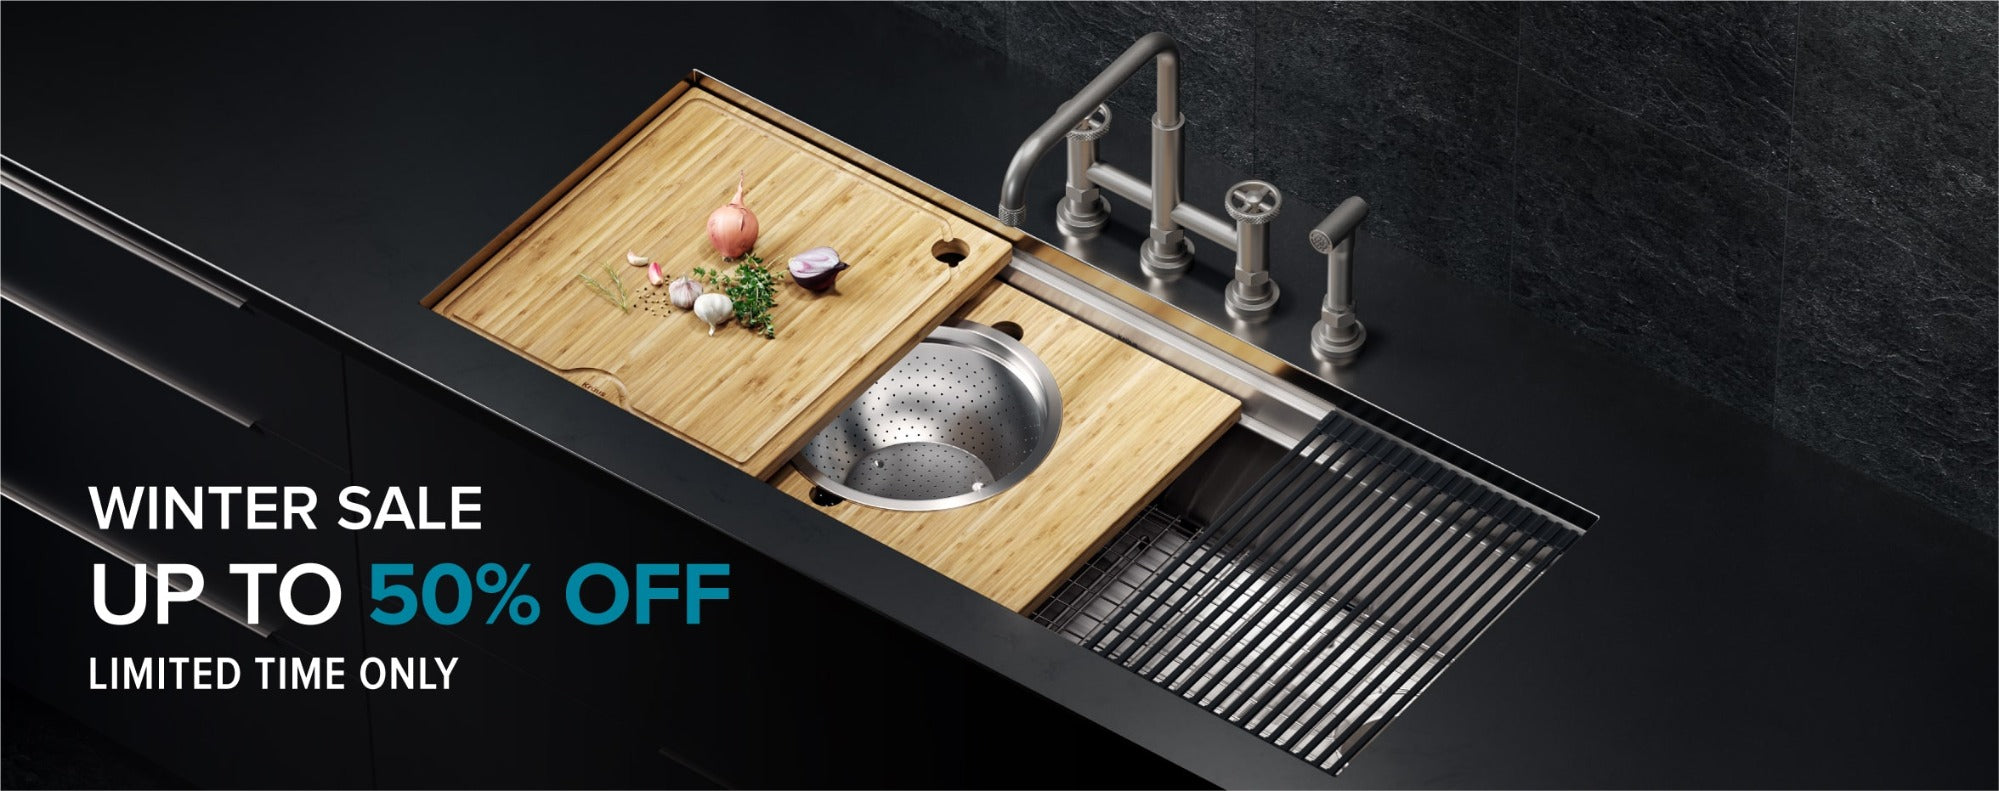 KRAUS winter sale, up to 50% off select KRAUS kitchen and bathroom products